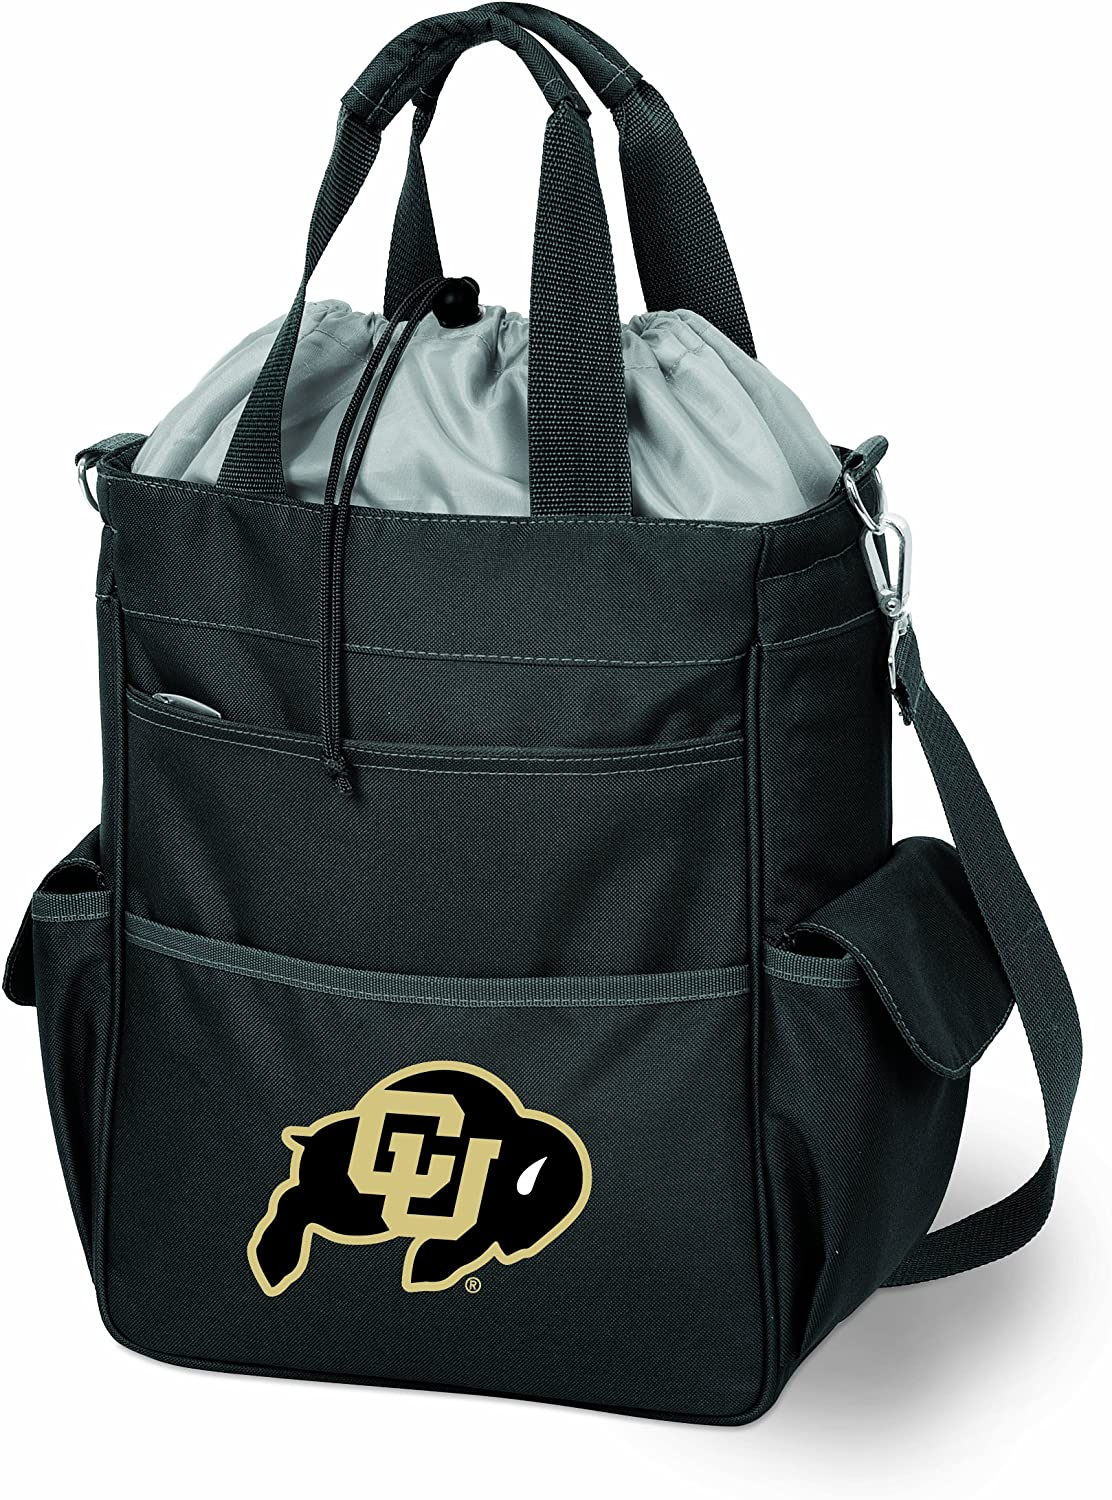 Picnic Time NCAA colorado golden Buffaloes Activo Tote